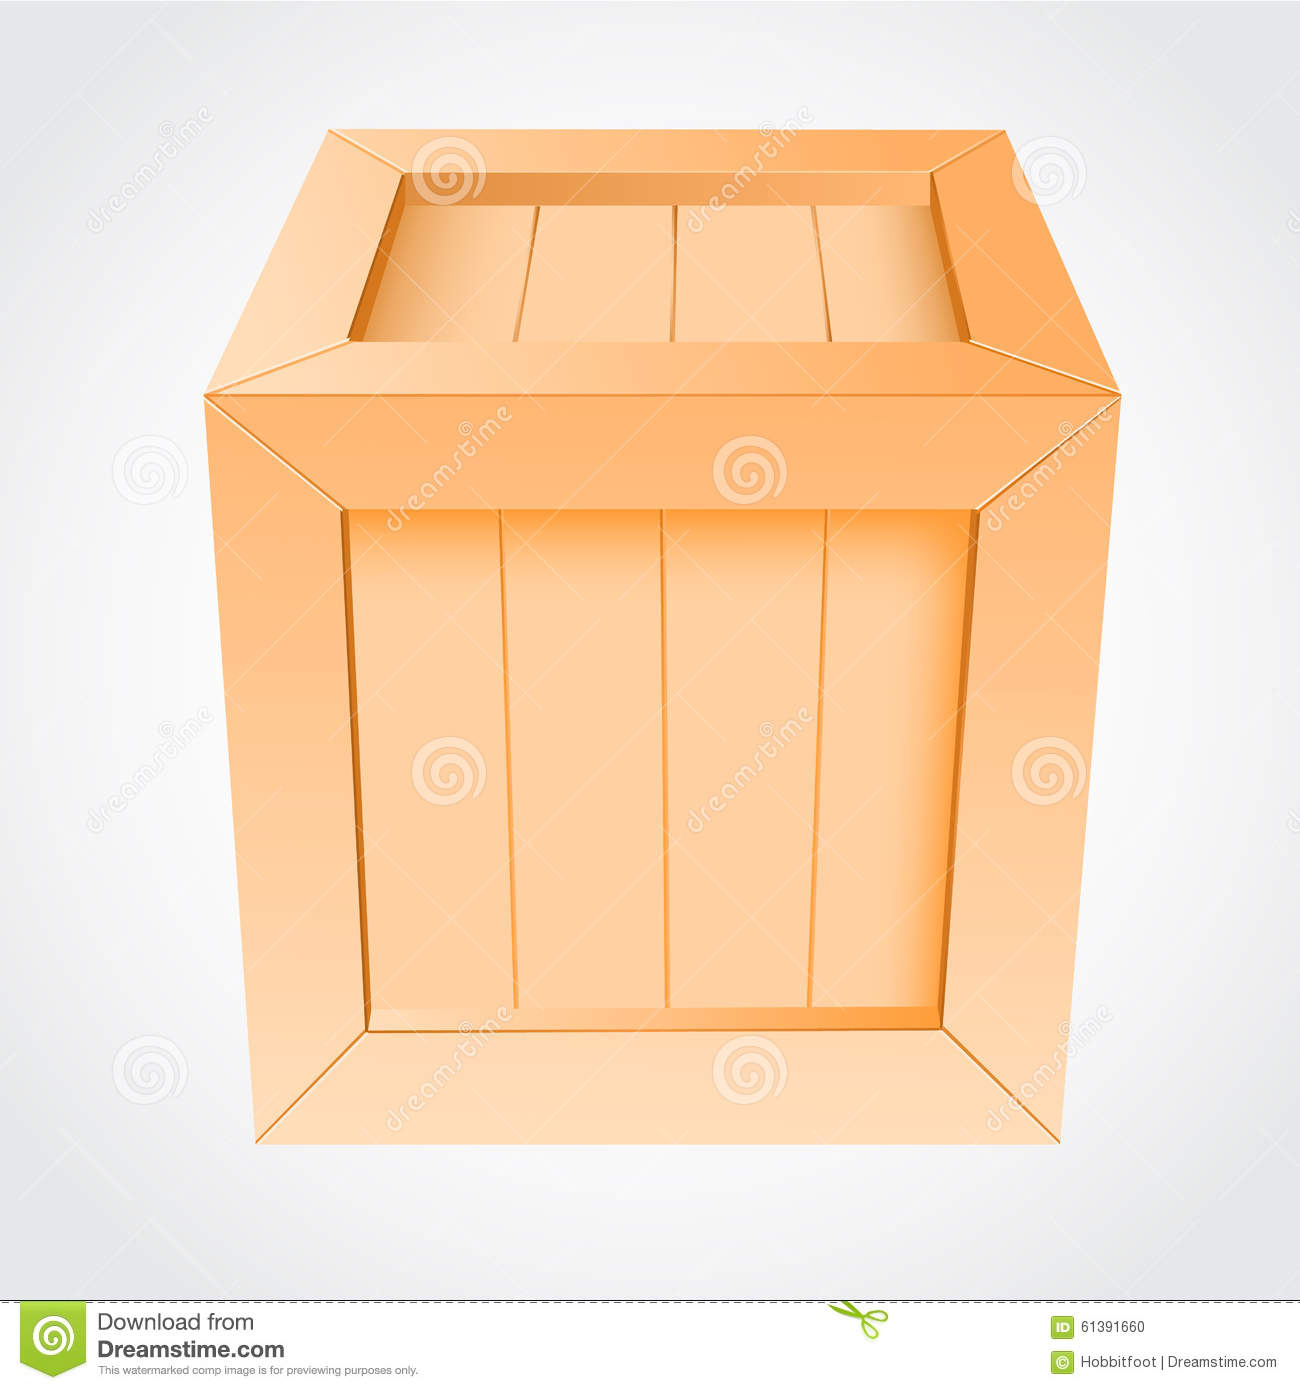 Wooden Box On White Background Stock Vector - Image: 61391660